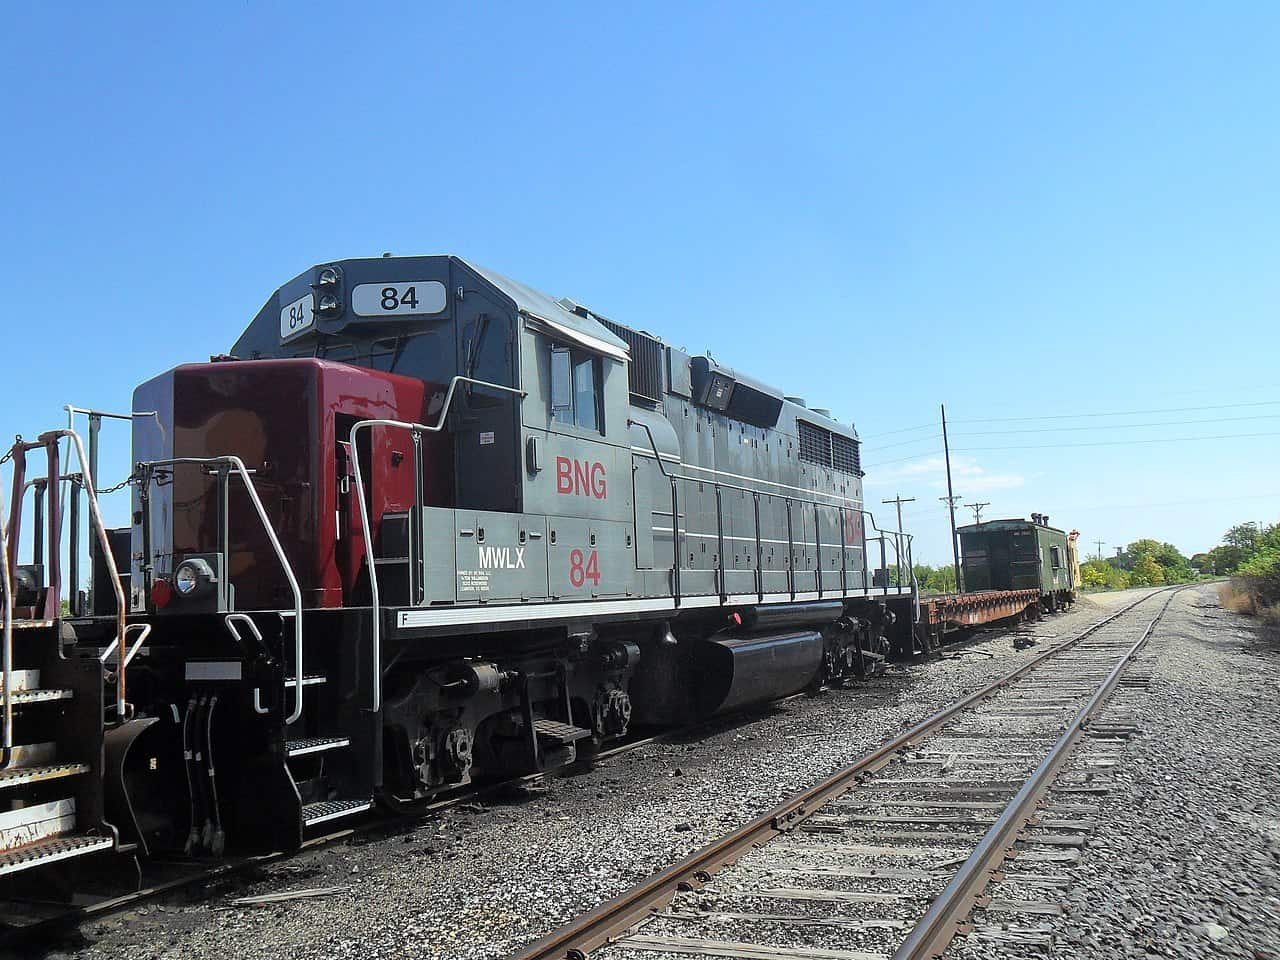 BNG 84, an EMD GP38-2, sits in the railyard at Blackwell, Oklahoma. Railroad jobs in Oklahoma